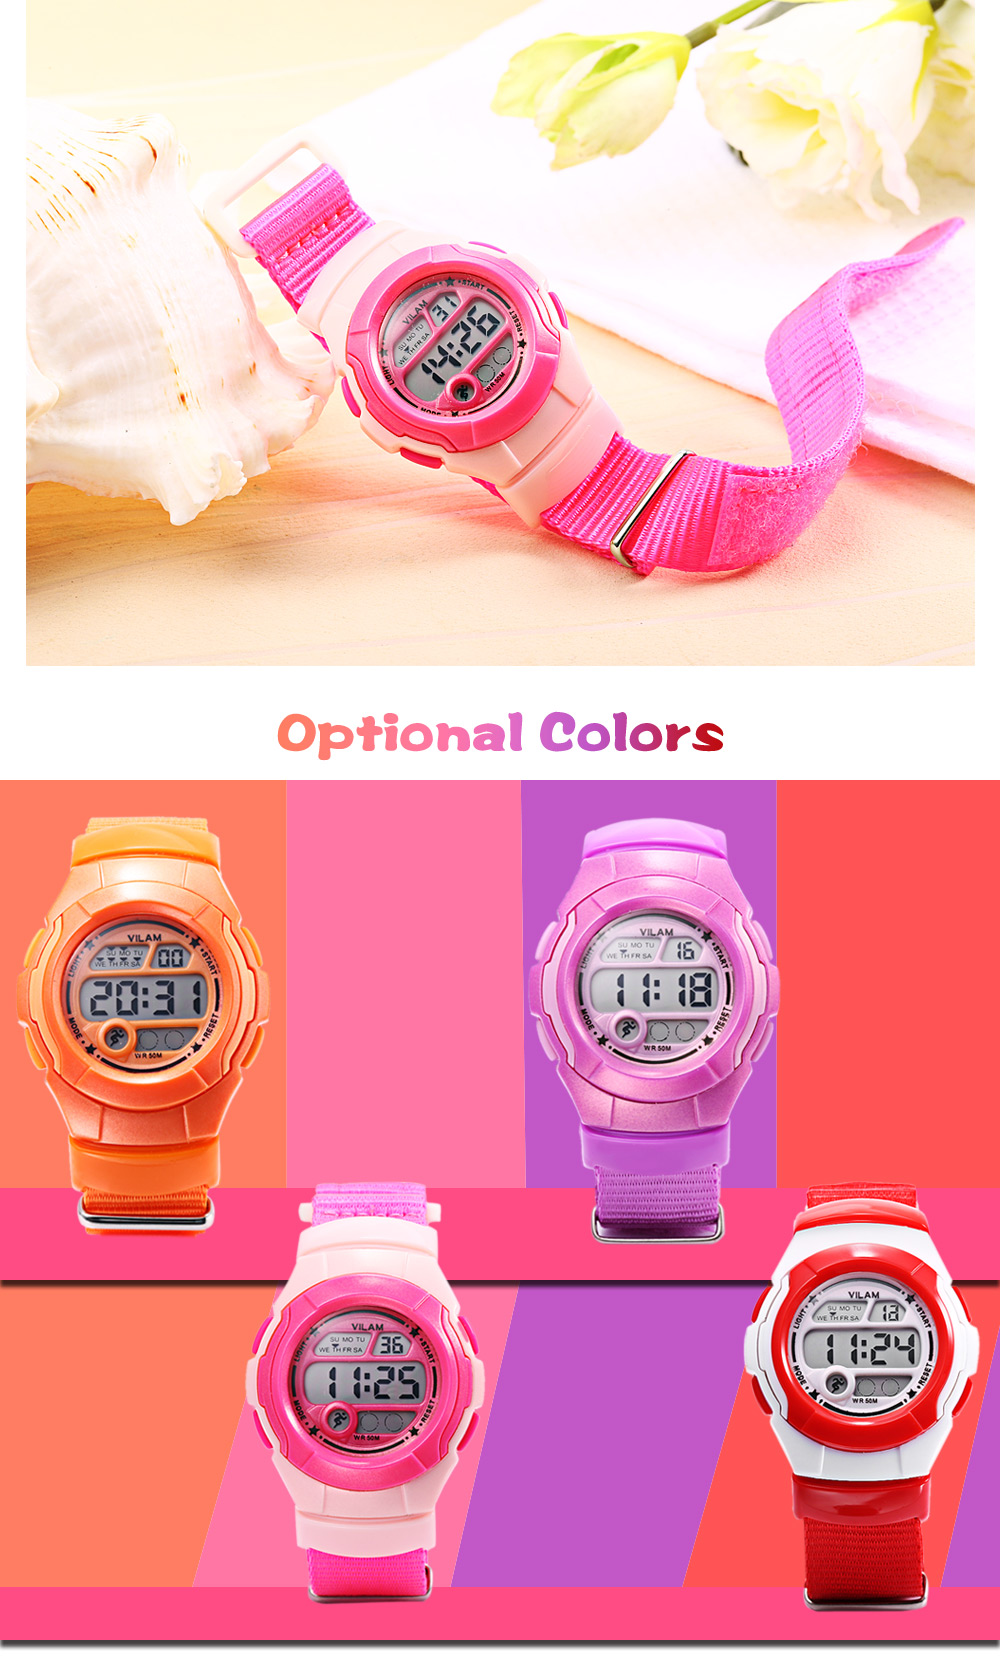 VILAM 0600 Digital Sports Watch Alarm Calendar Chronograph Display 50m Water Resistance Wristwatch